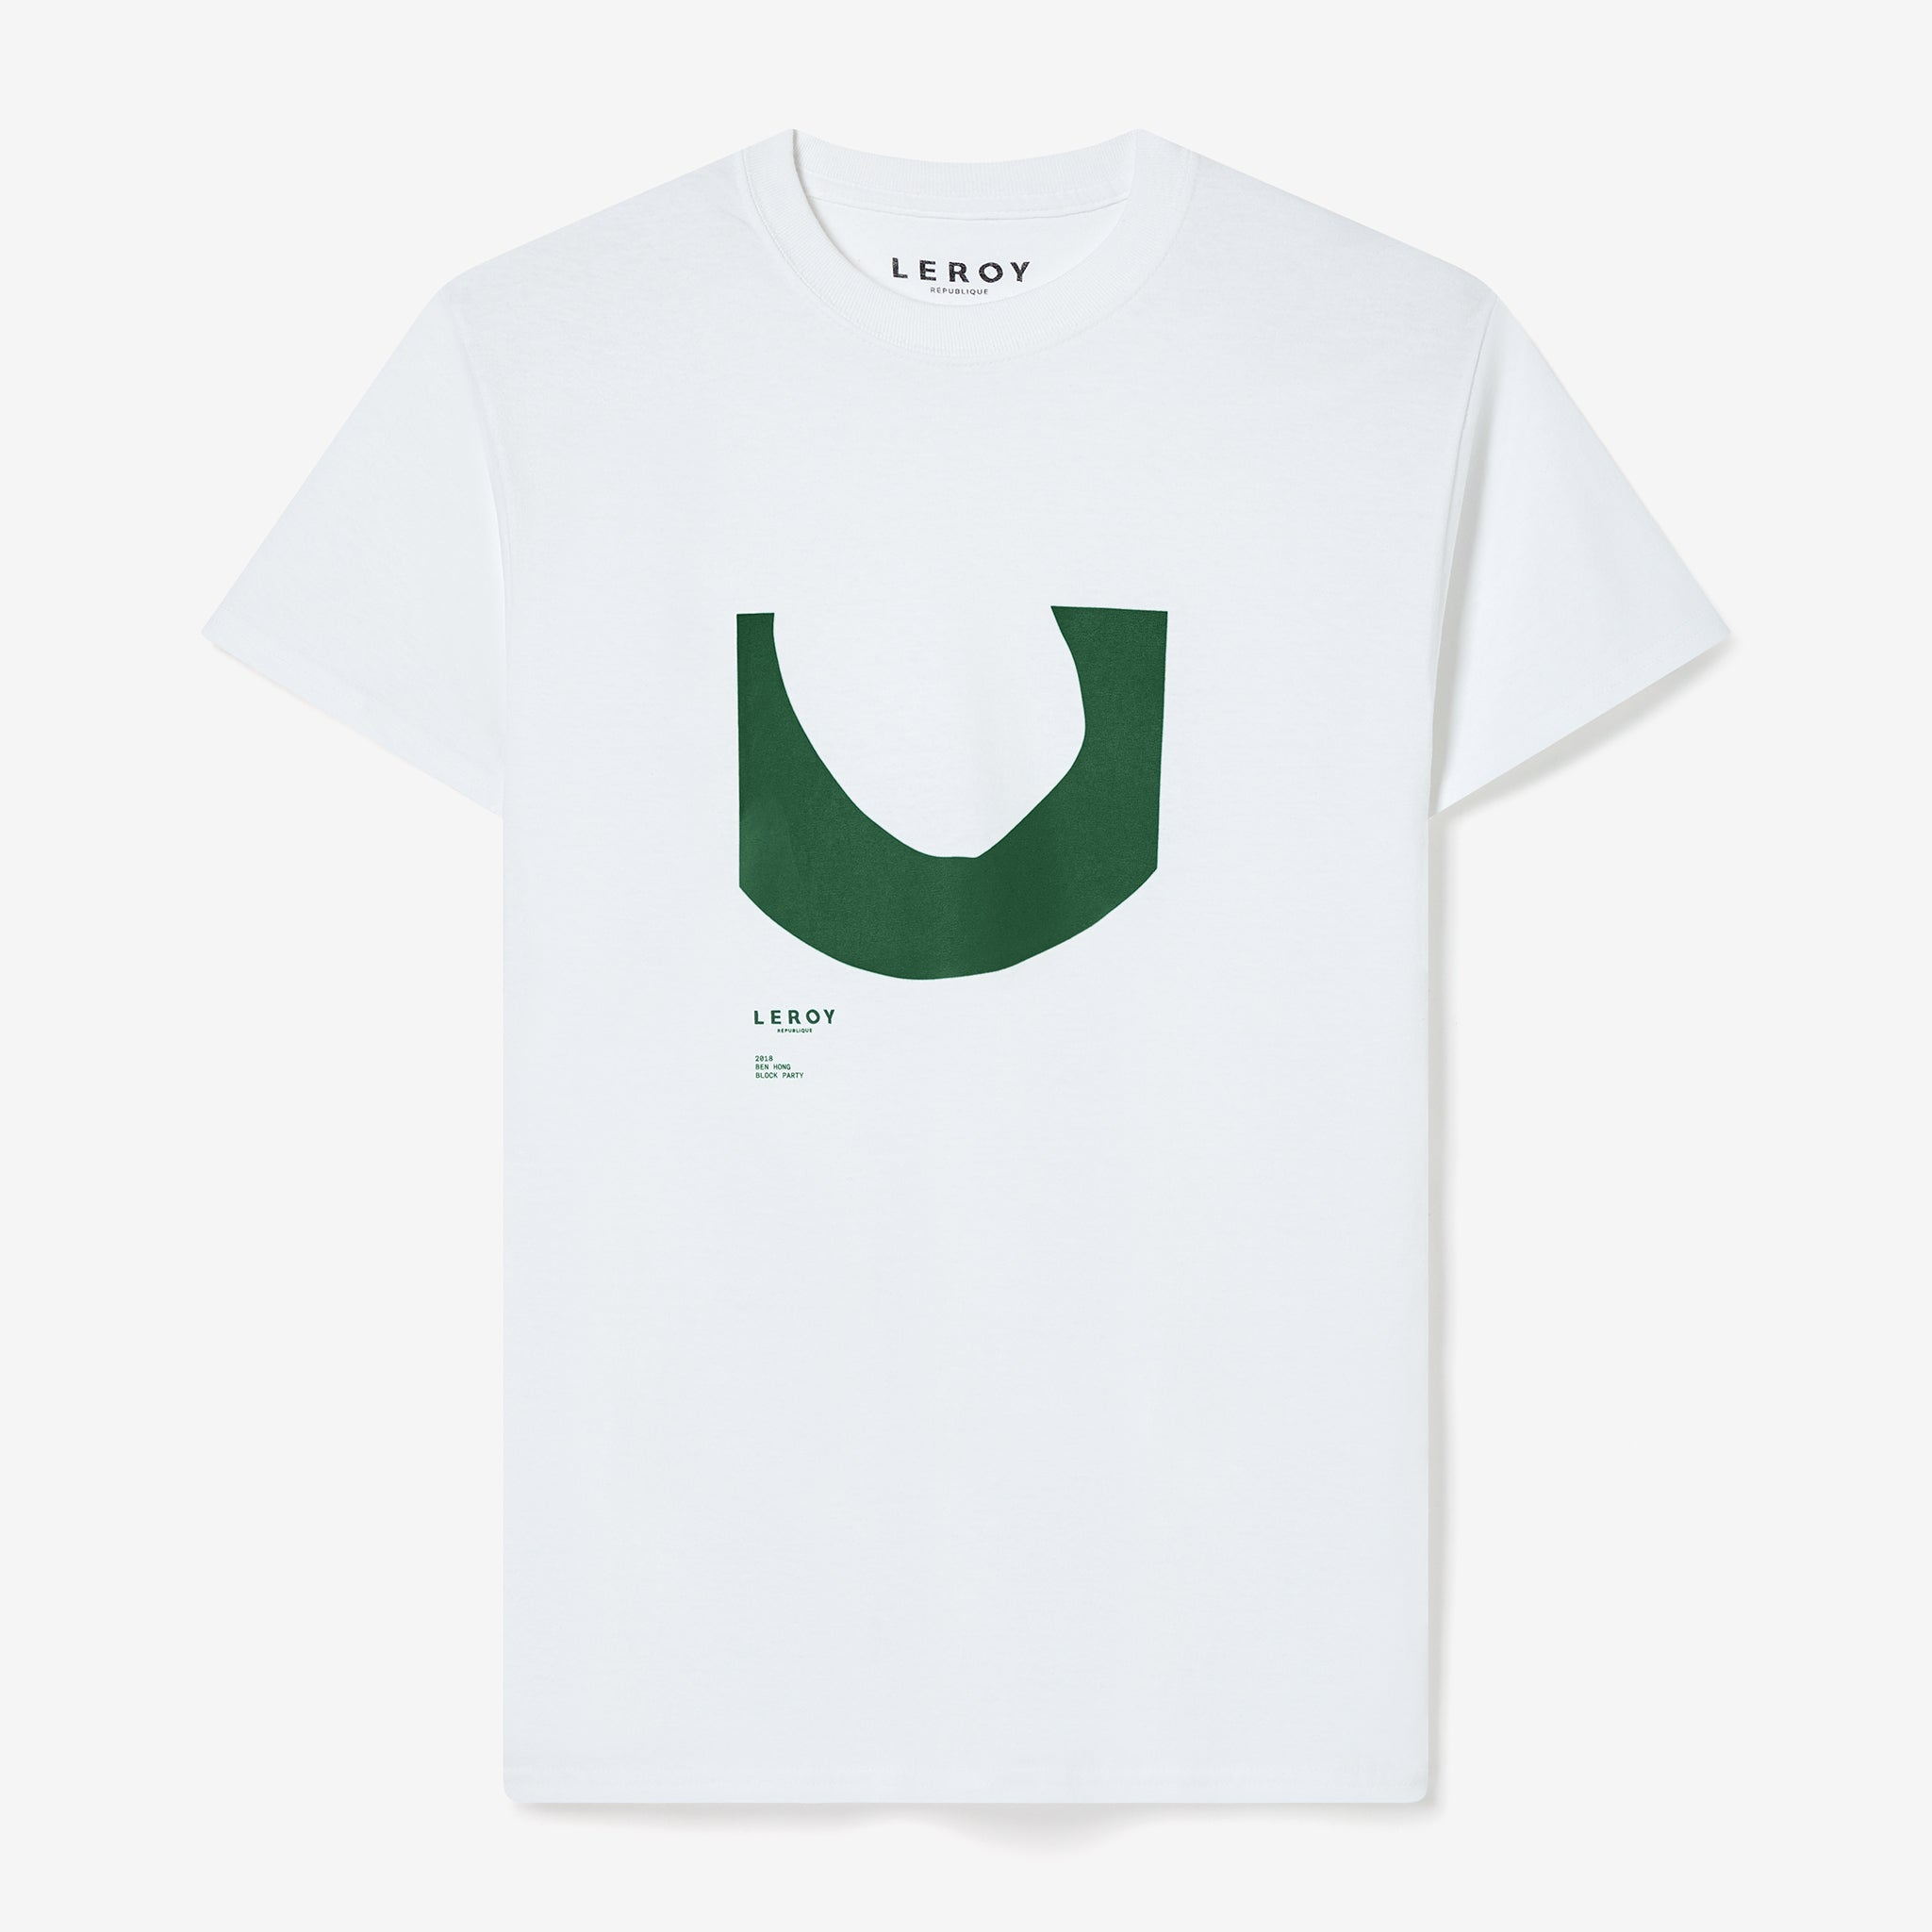 Ditch green T-shirt